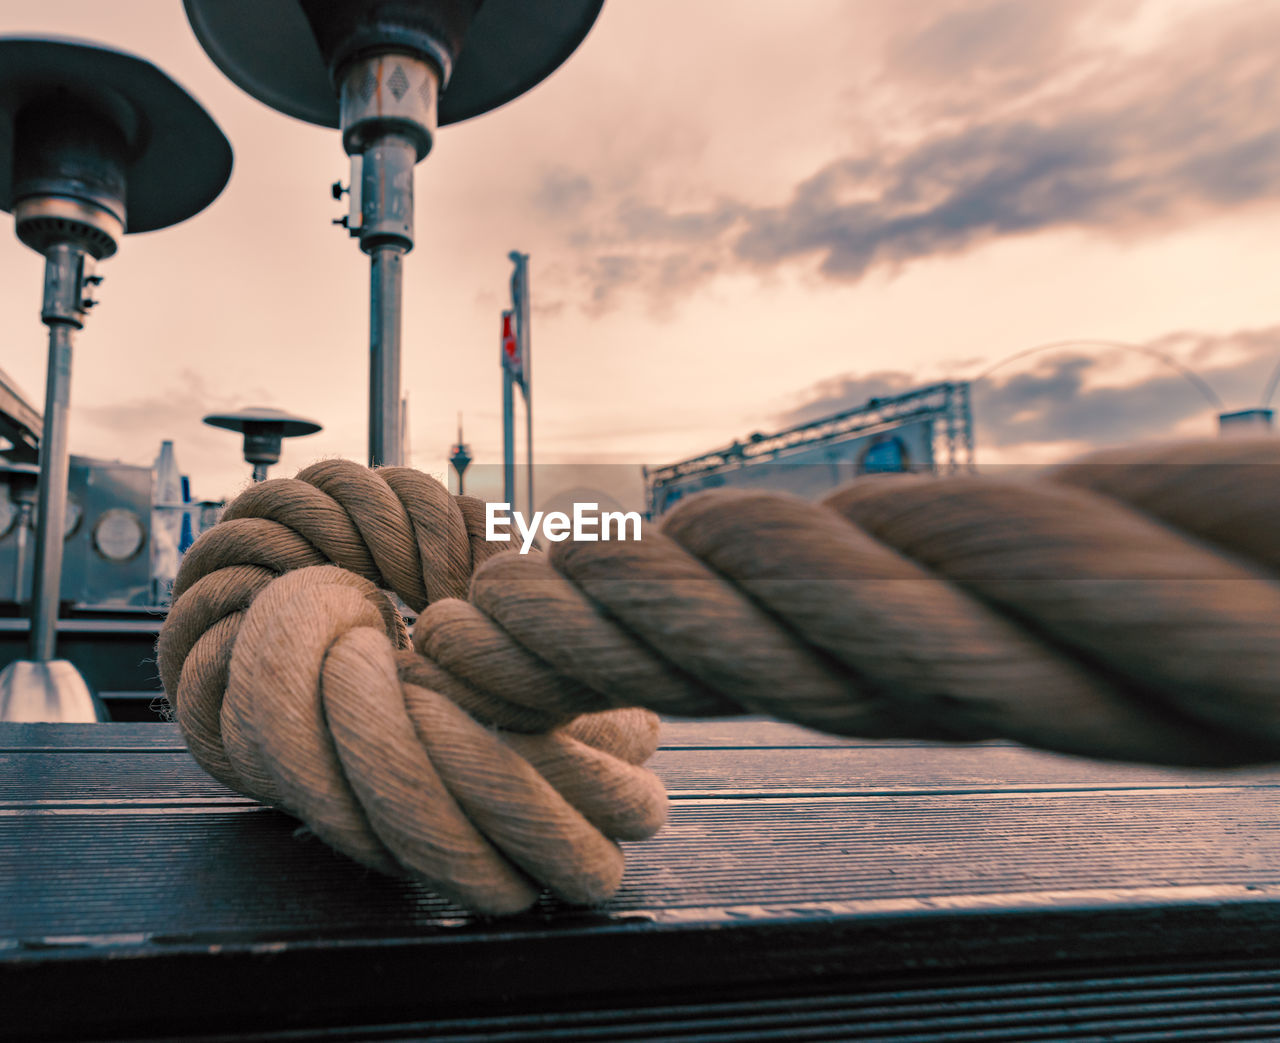 sky, no people, close-up, focus on foreground, transportation, rope, day, nature, outdoors, mode of transportation, nautical vessel, cloud - sky, textile, railing, wood - material, sunset, selective focus, built structure, wool, still life